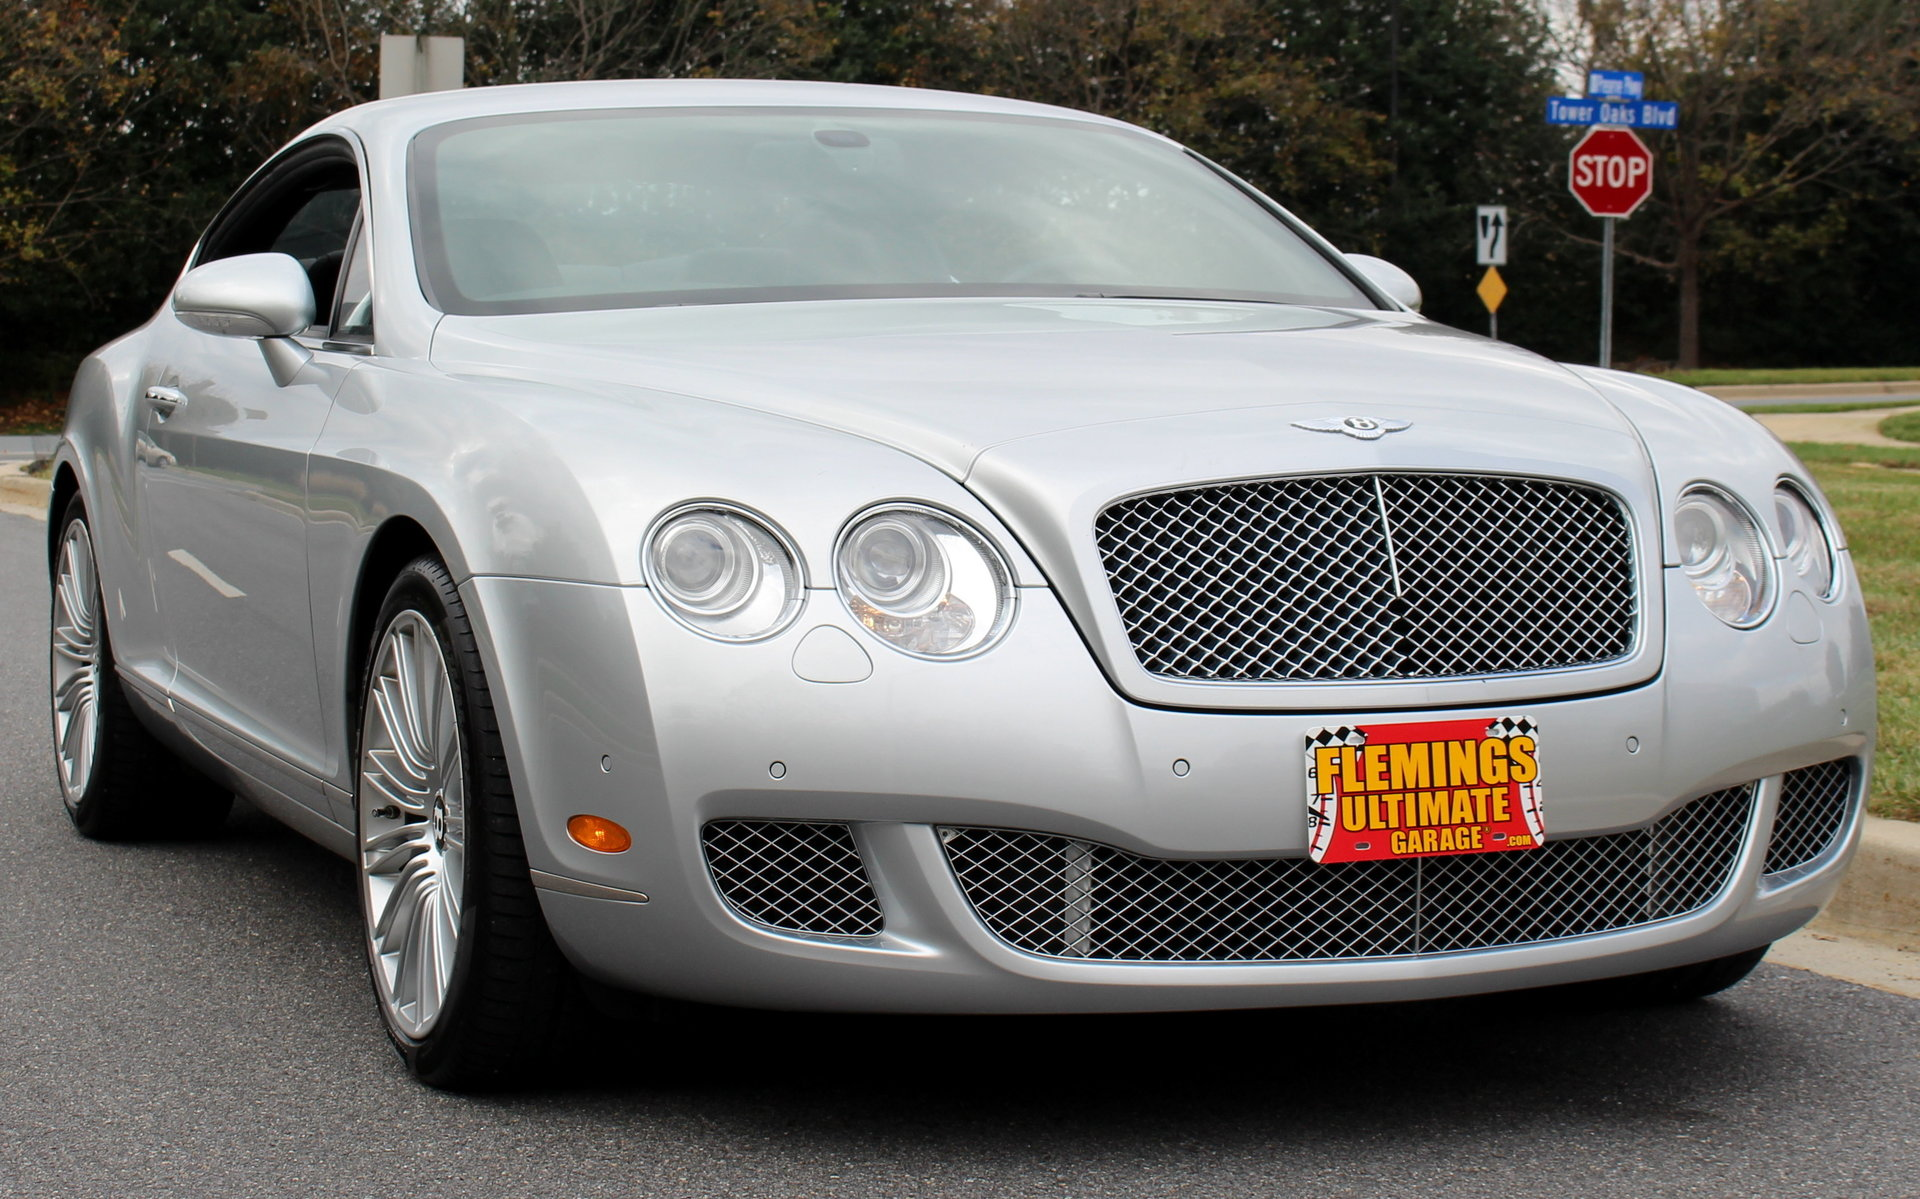 michigan price continental bentley photos for and info reviews photo sale s driver news gt original in car specs